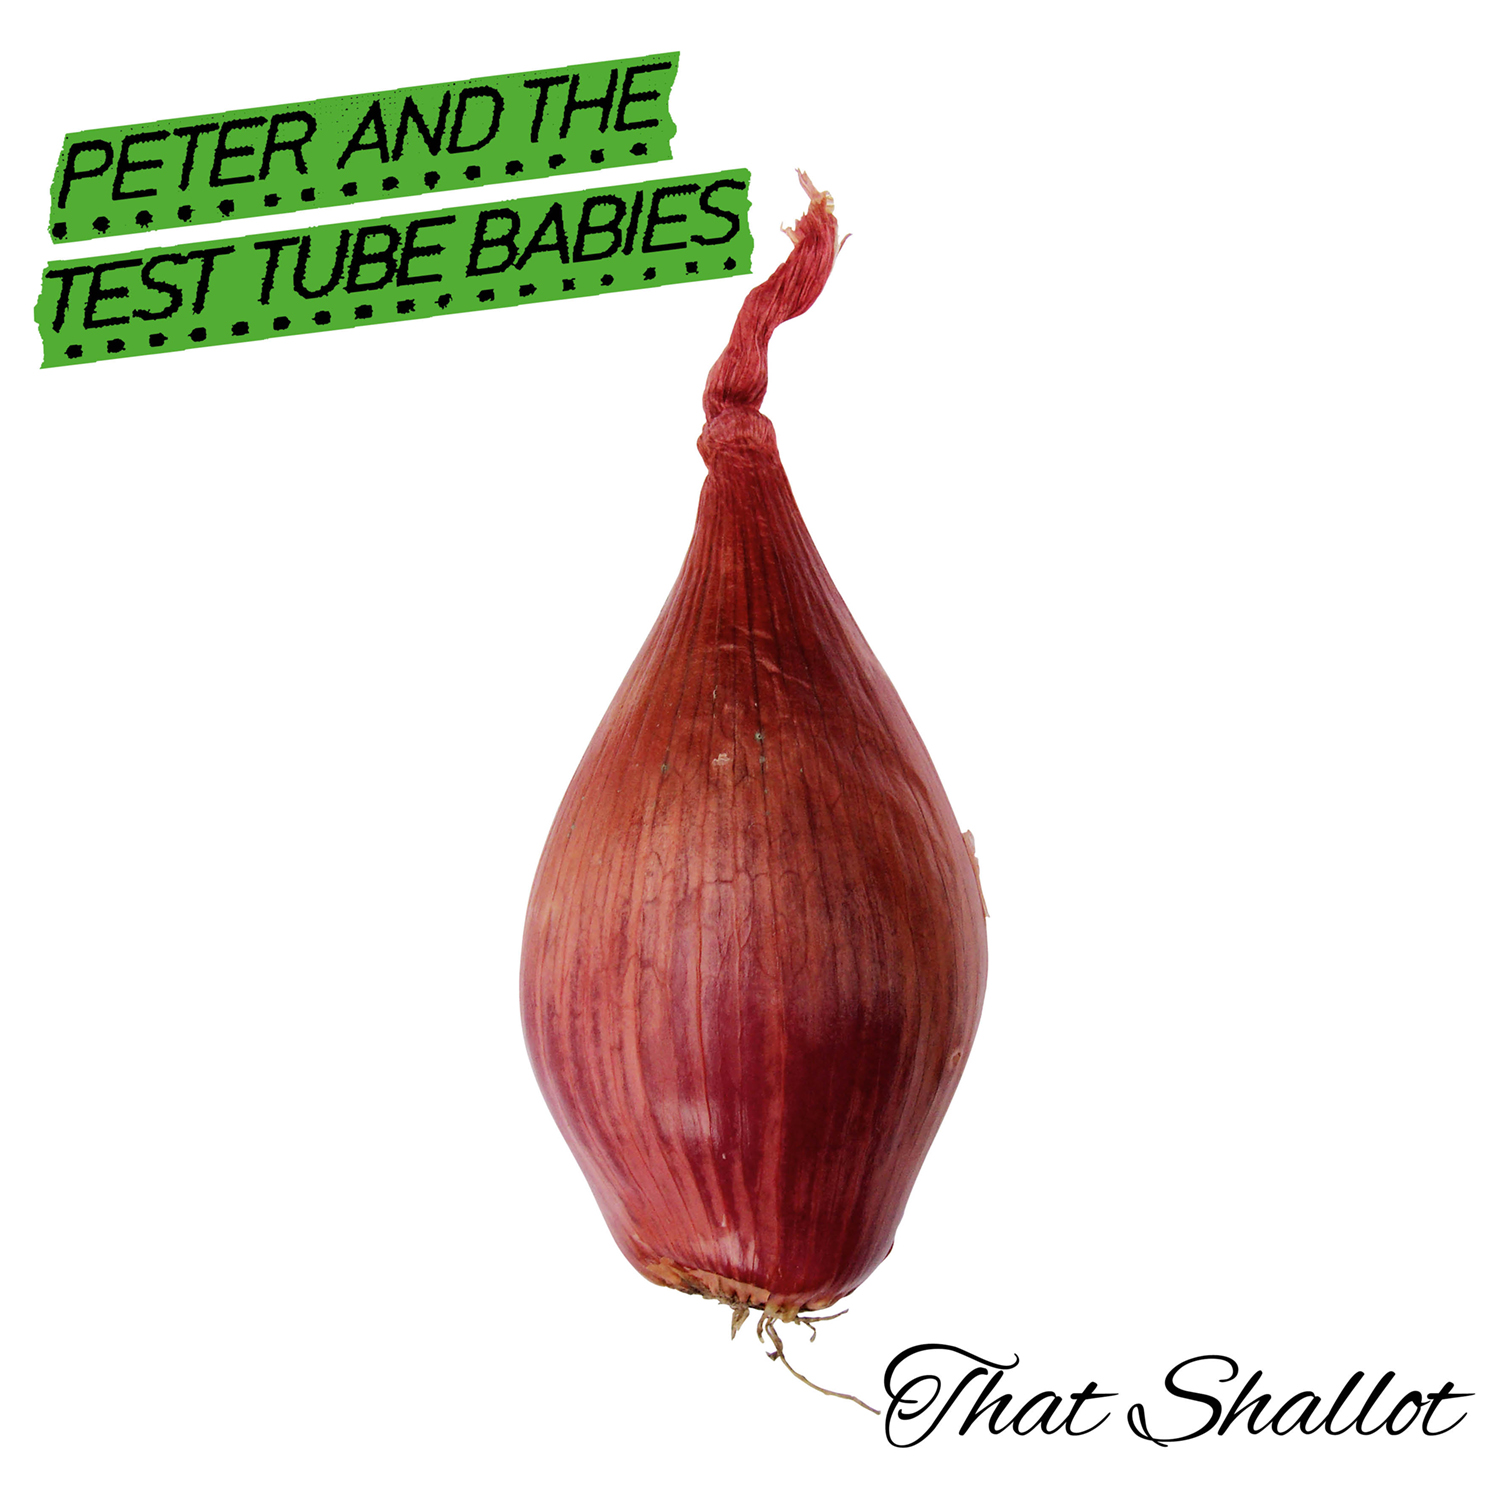 PETER & THE TEST TUBE BABIES – That Shallot